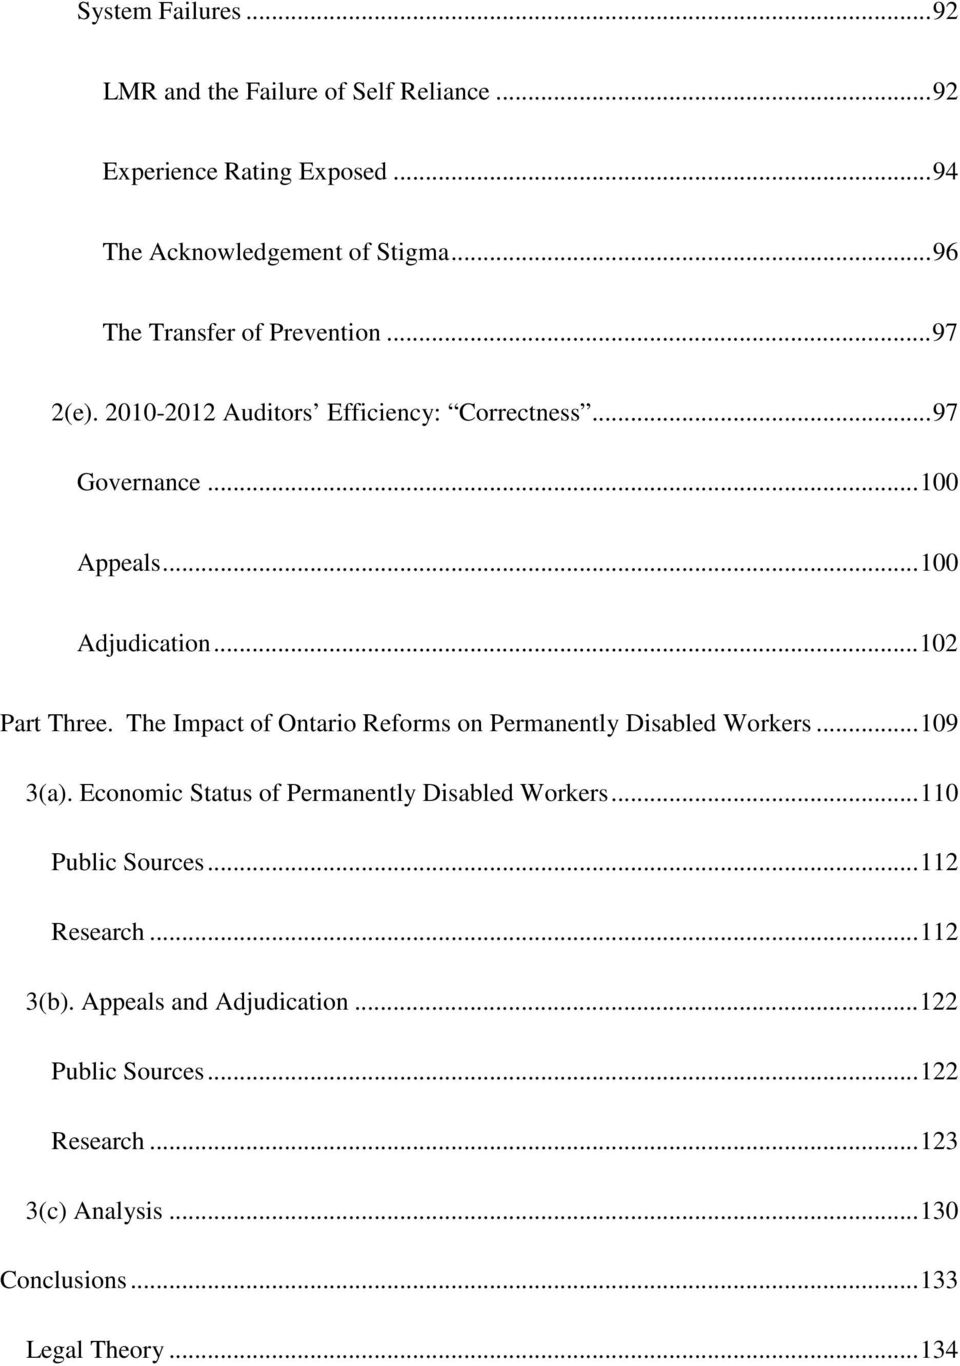 .. 102 Part Three. The Impact of Ontario Reforms on Permanently Disabled Workers... 109 3(a). Economic Status of Permanently Disabled Workers.